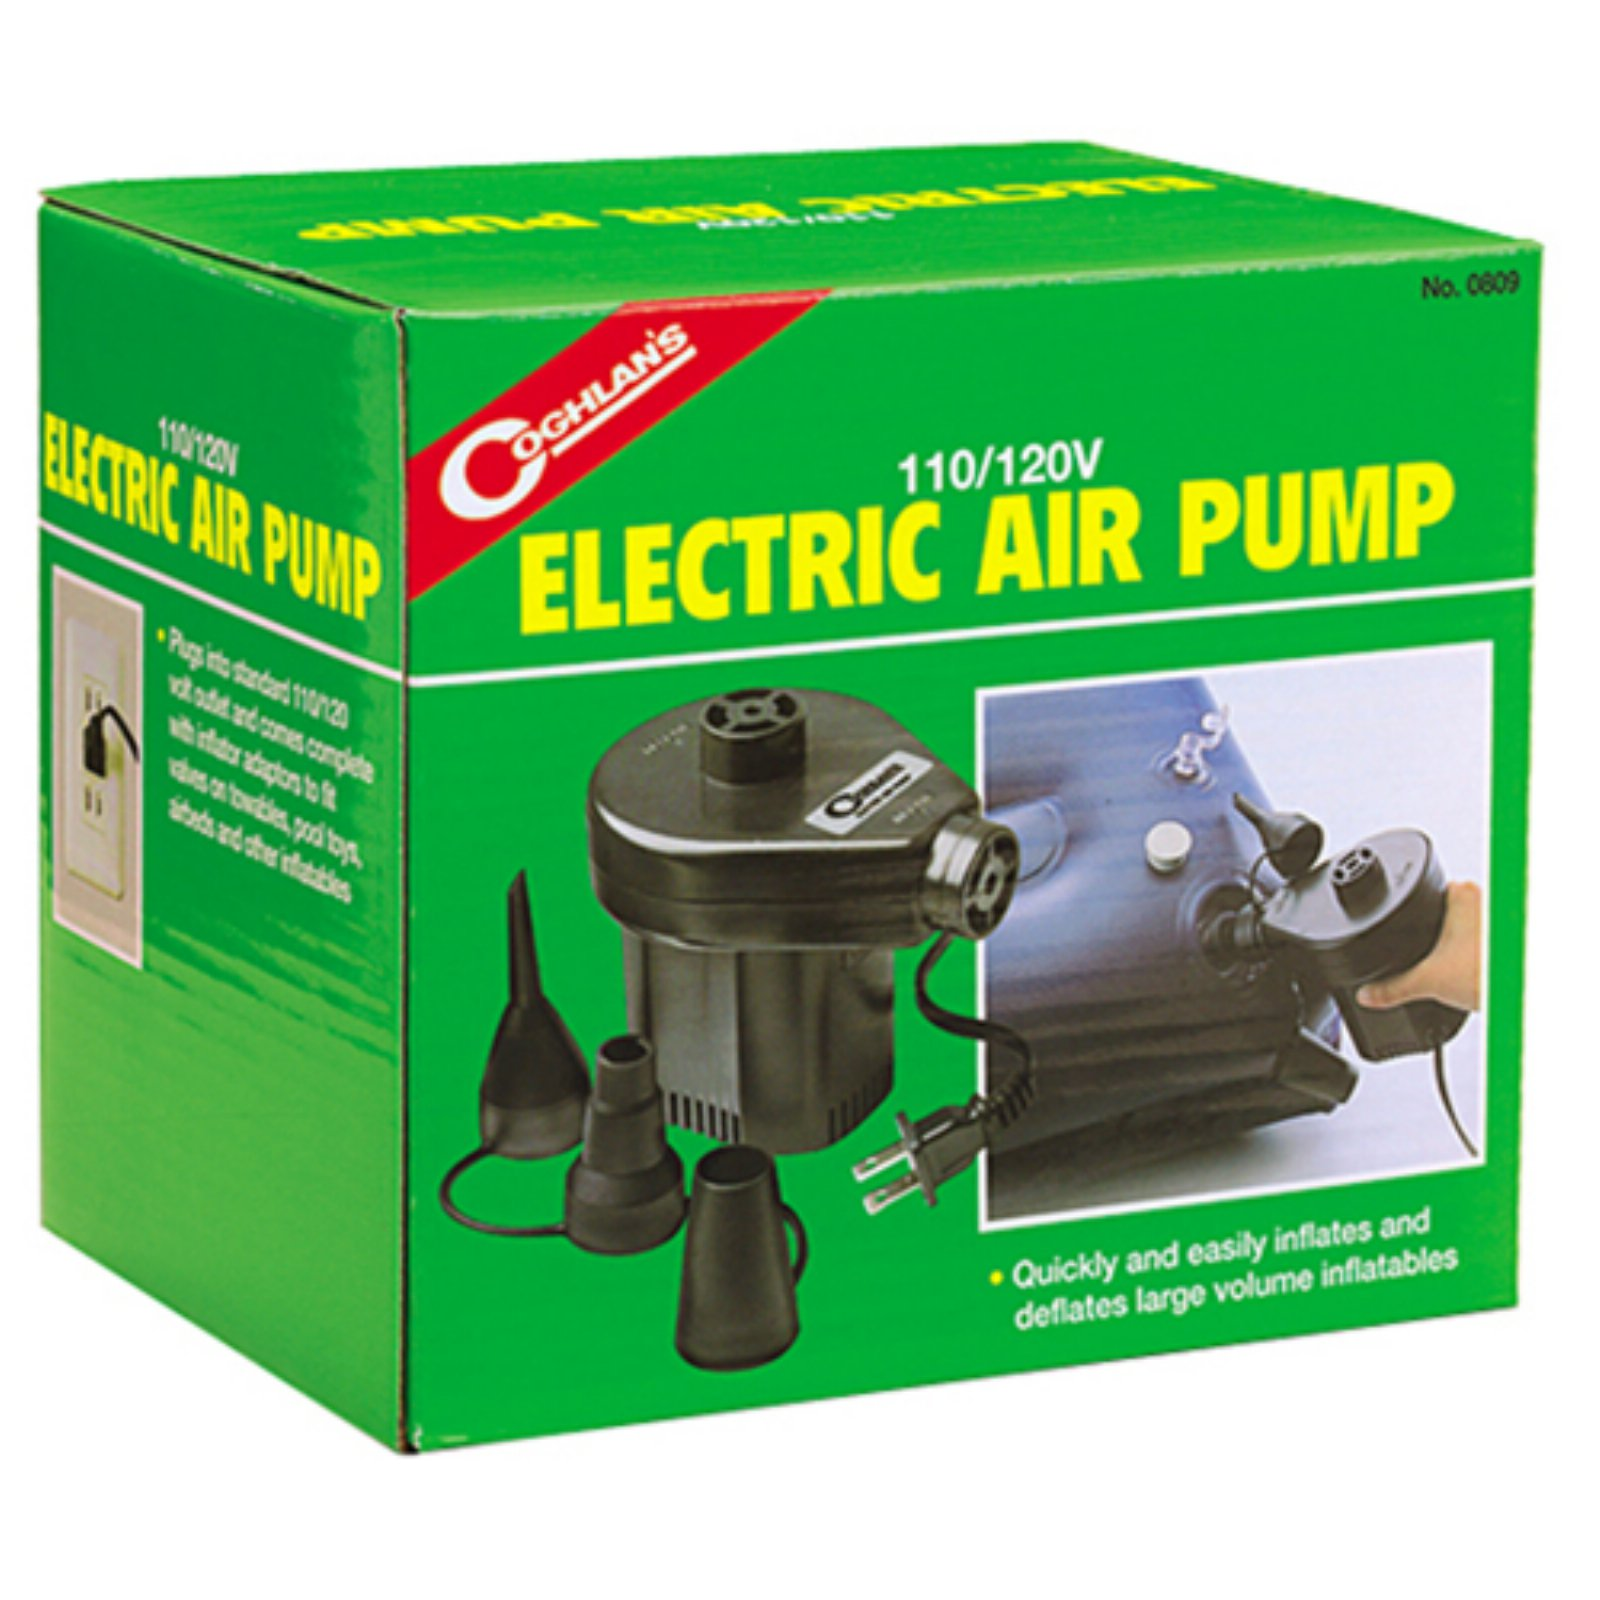 Coghlan's 0809 110 Volt To 120 Volt Electric Air Pump by Coghlan's